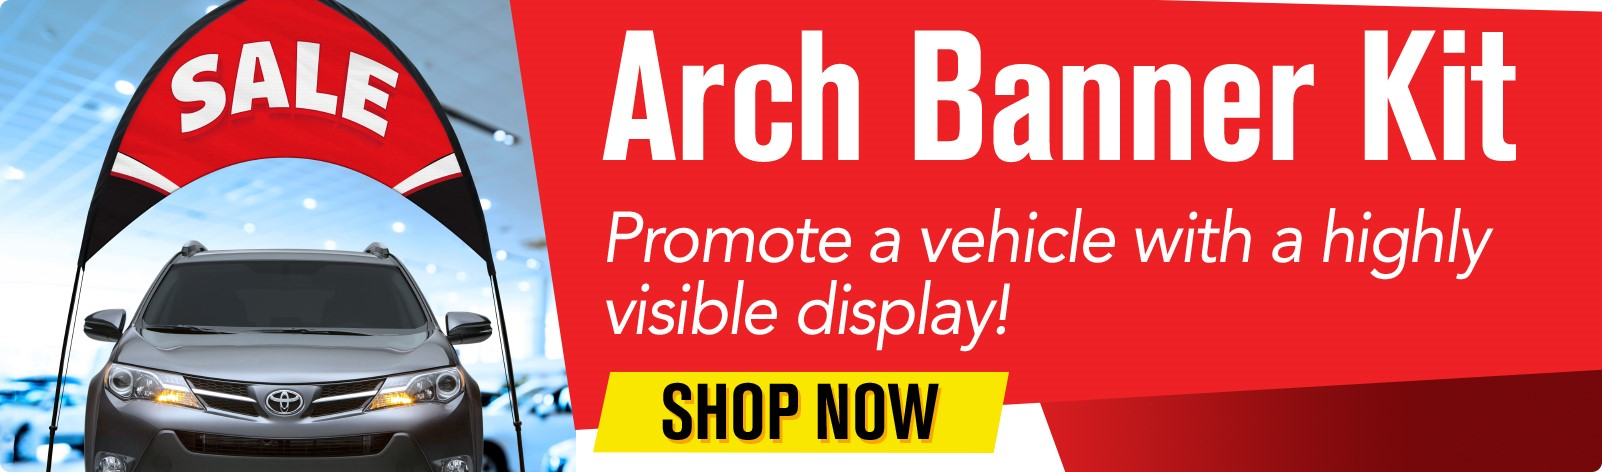 Arch Banner Kit - Promote a vehicle with a highly visible display!